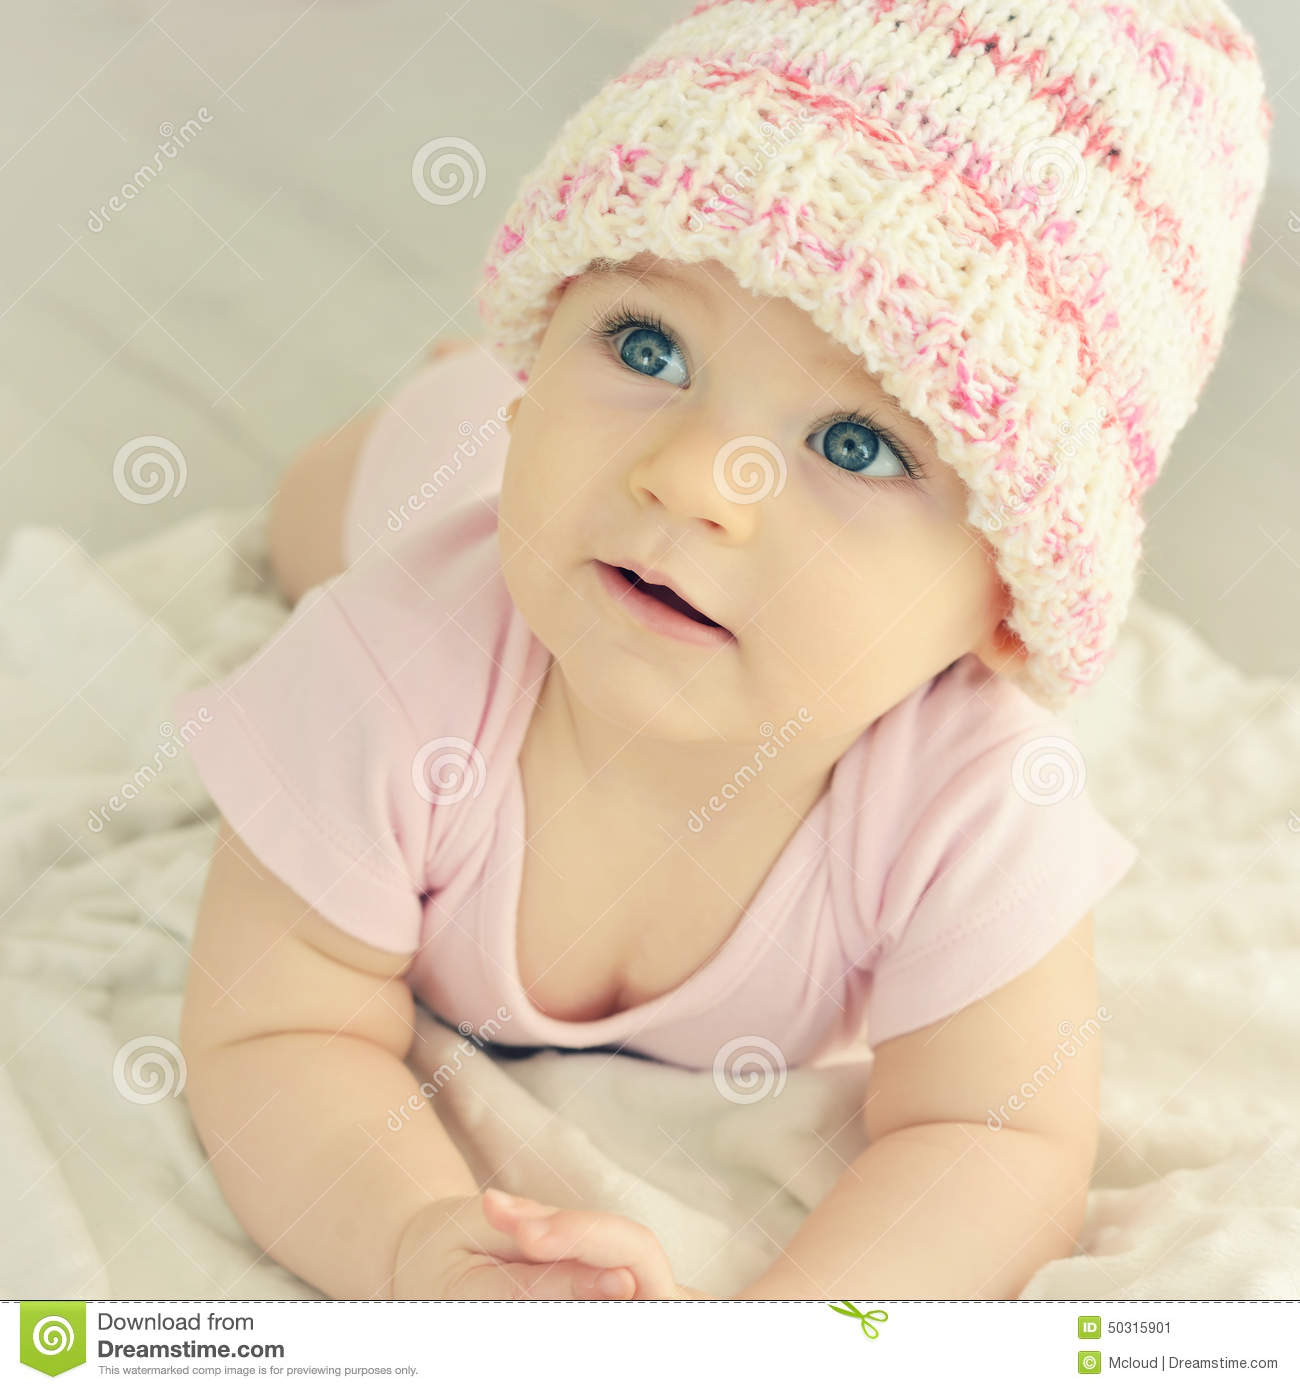 newborn baby girl in pink knitted hat. stock photo 50315901 - megapixl